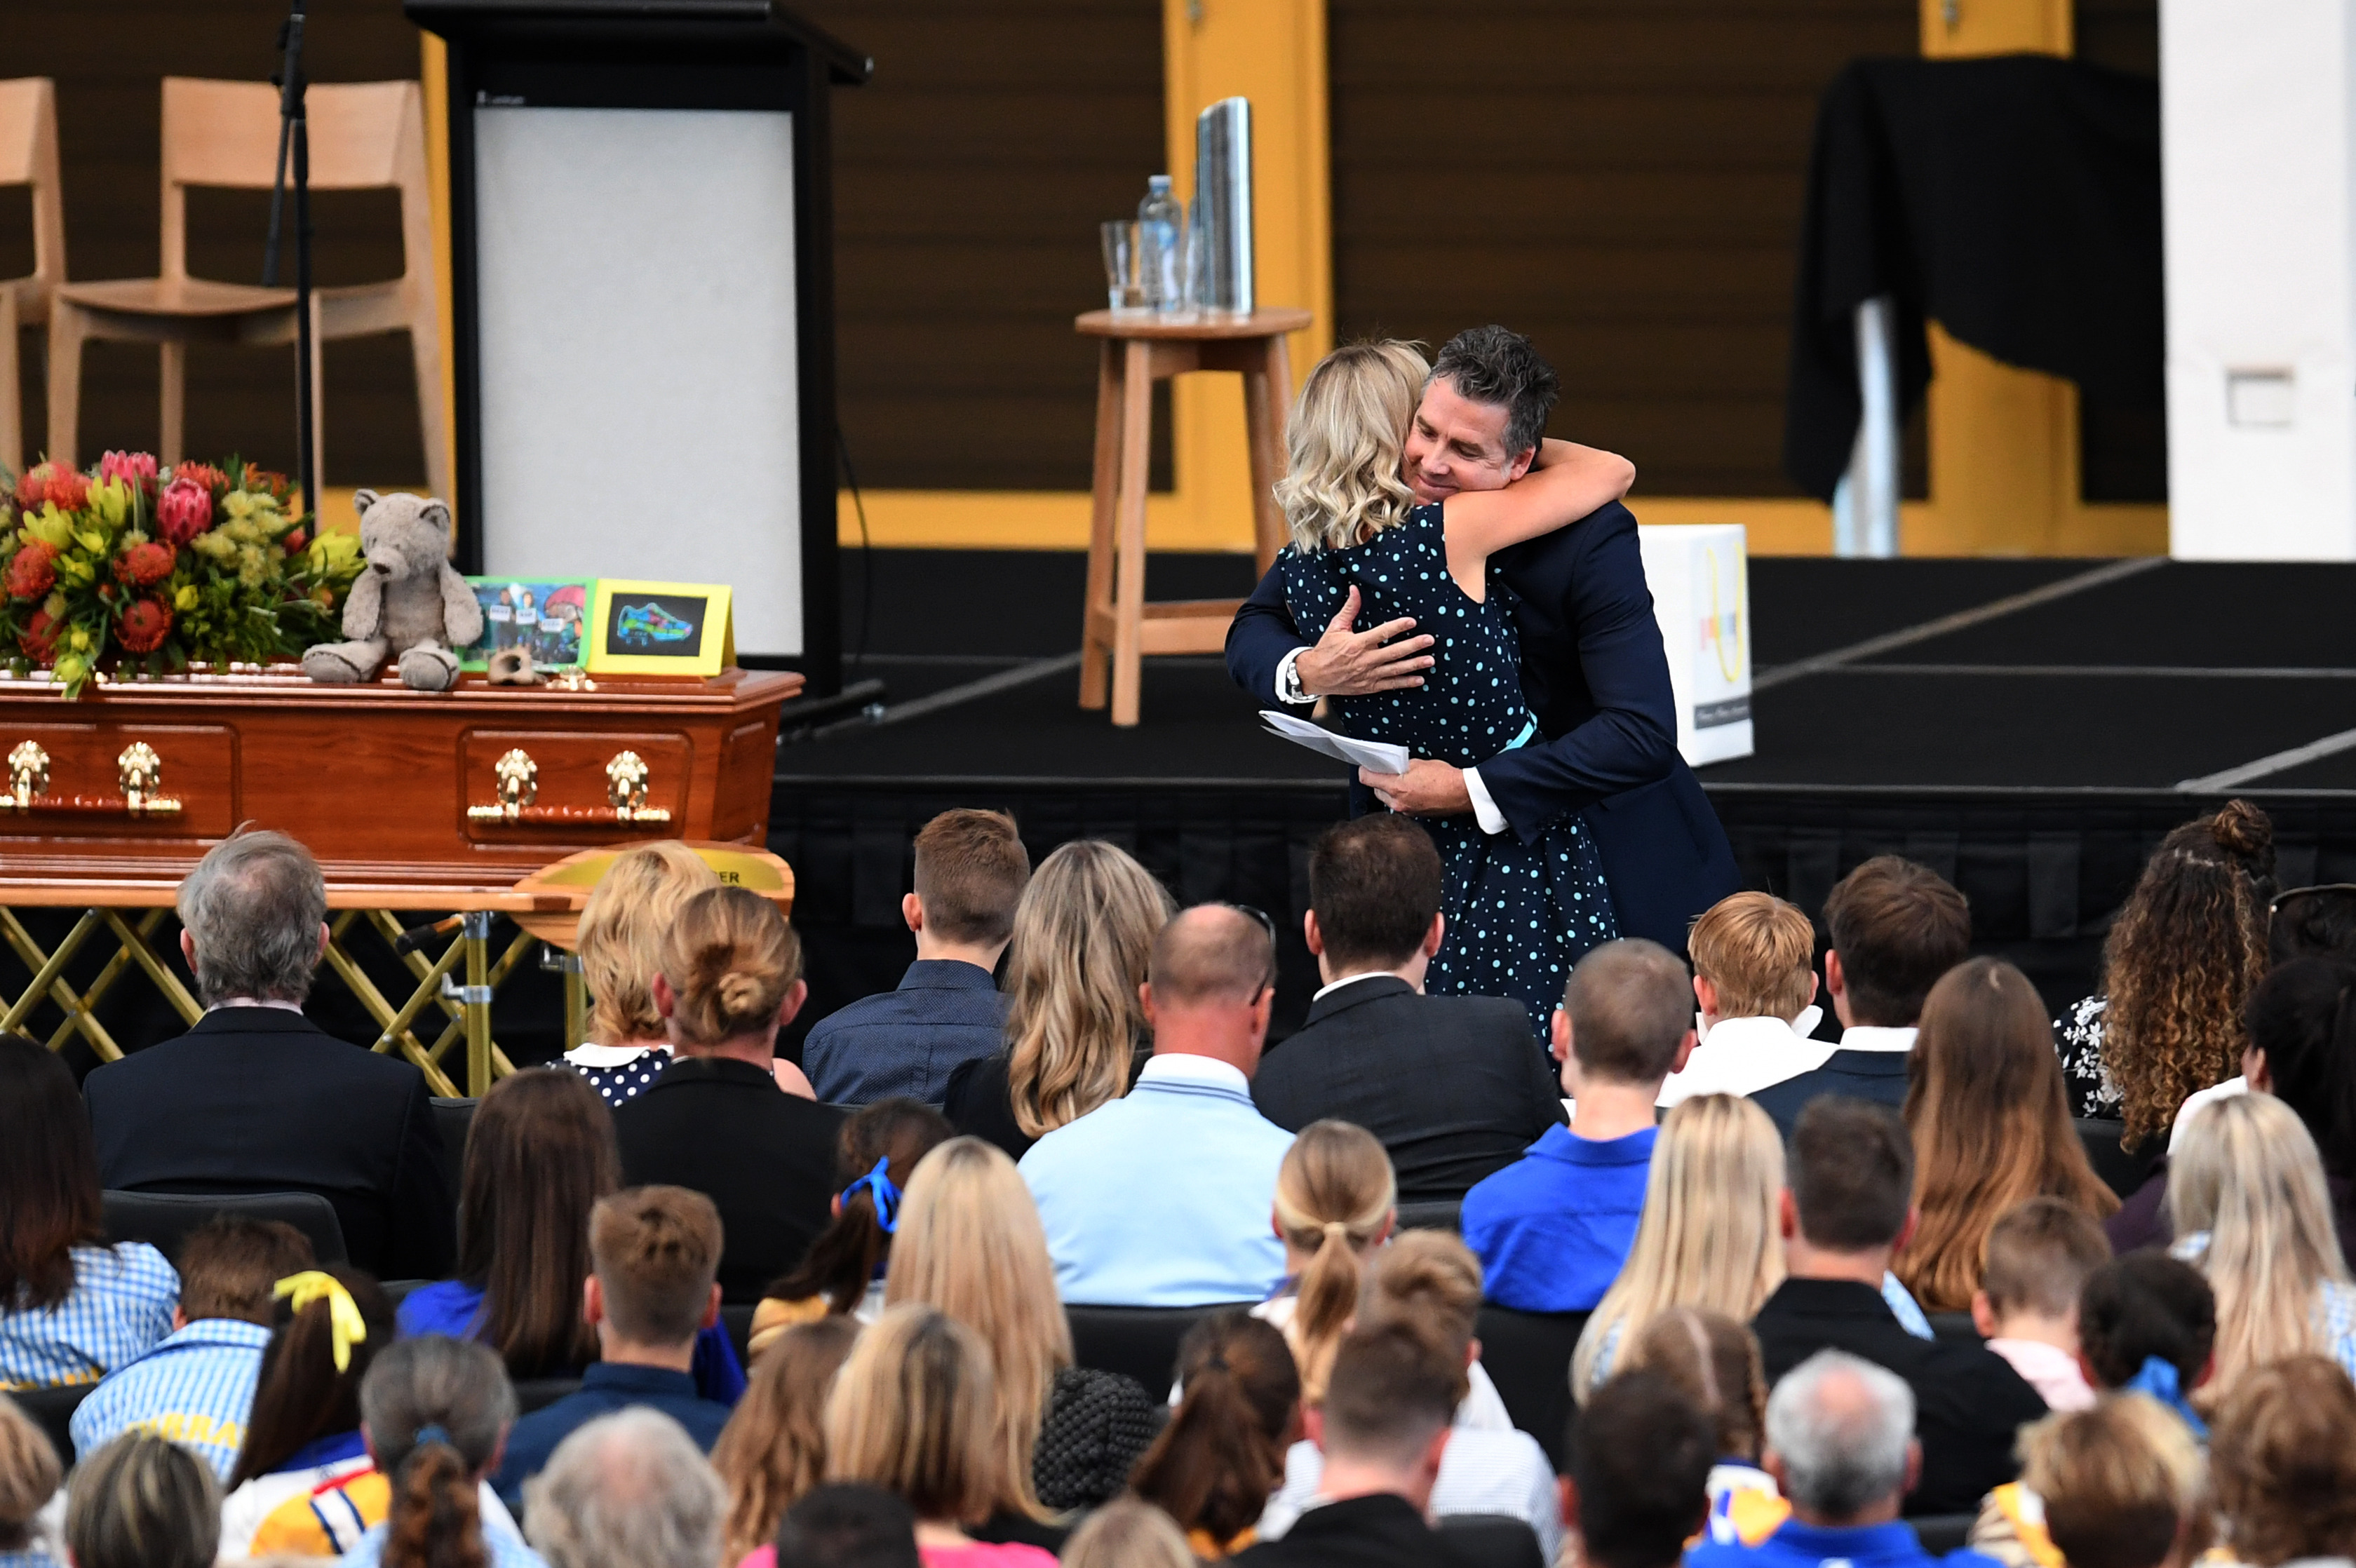 Dean Mercer's brother Darren hugs Reen Mercer during a memorial service for their brother and husband. (AAP)